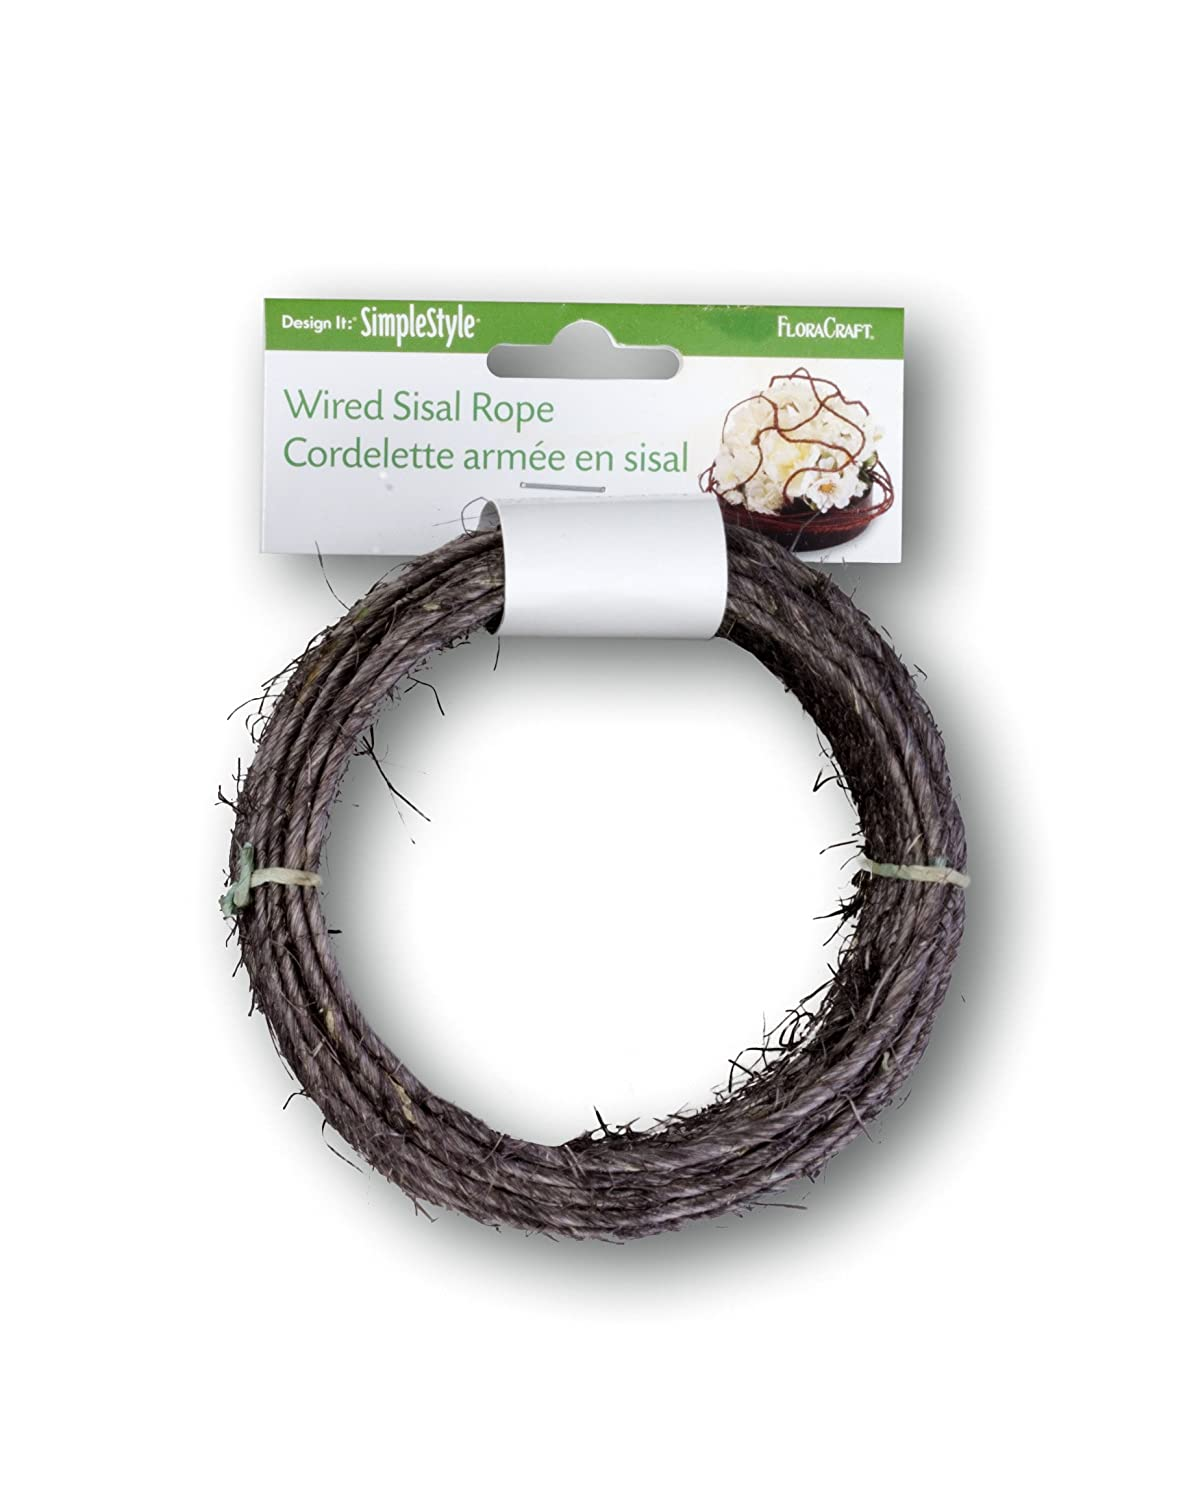 Amazon.com: FloraCraft SimpleStyle Wired Sisal Rope, Brown, 40 Feet